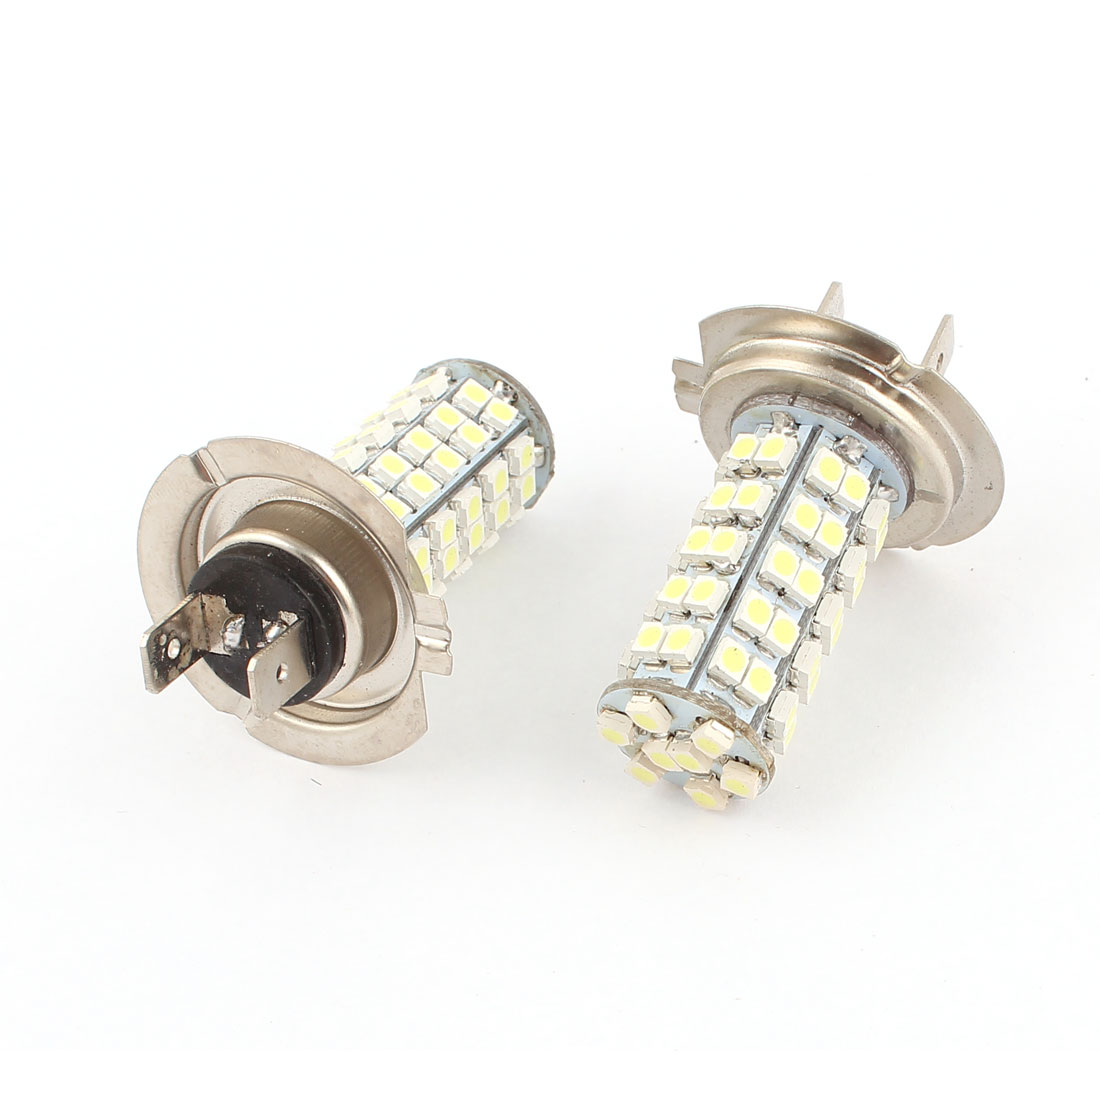 Car White LED 70 SMD 3528 Bulbs H7 Fog Daytime Light Lamp 2 Pcs